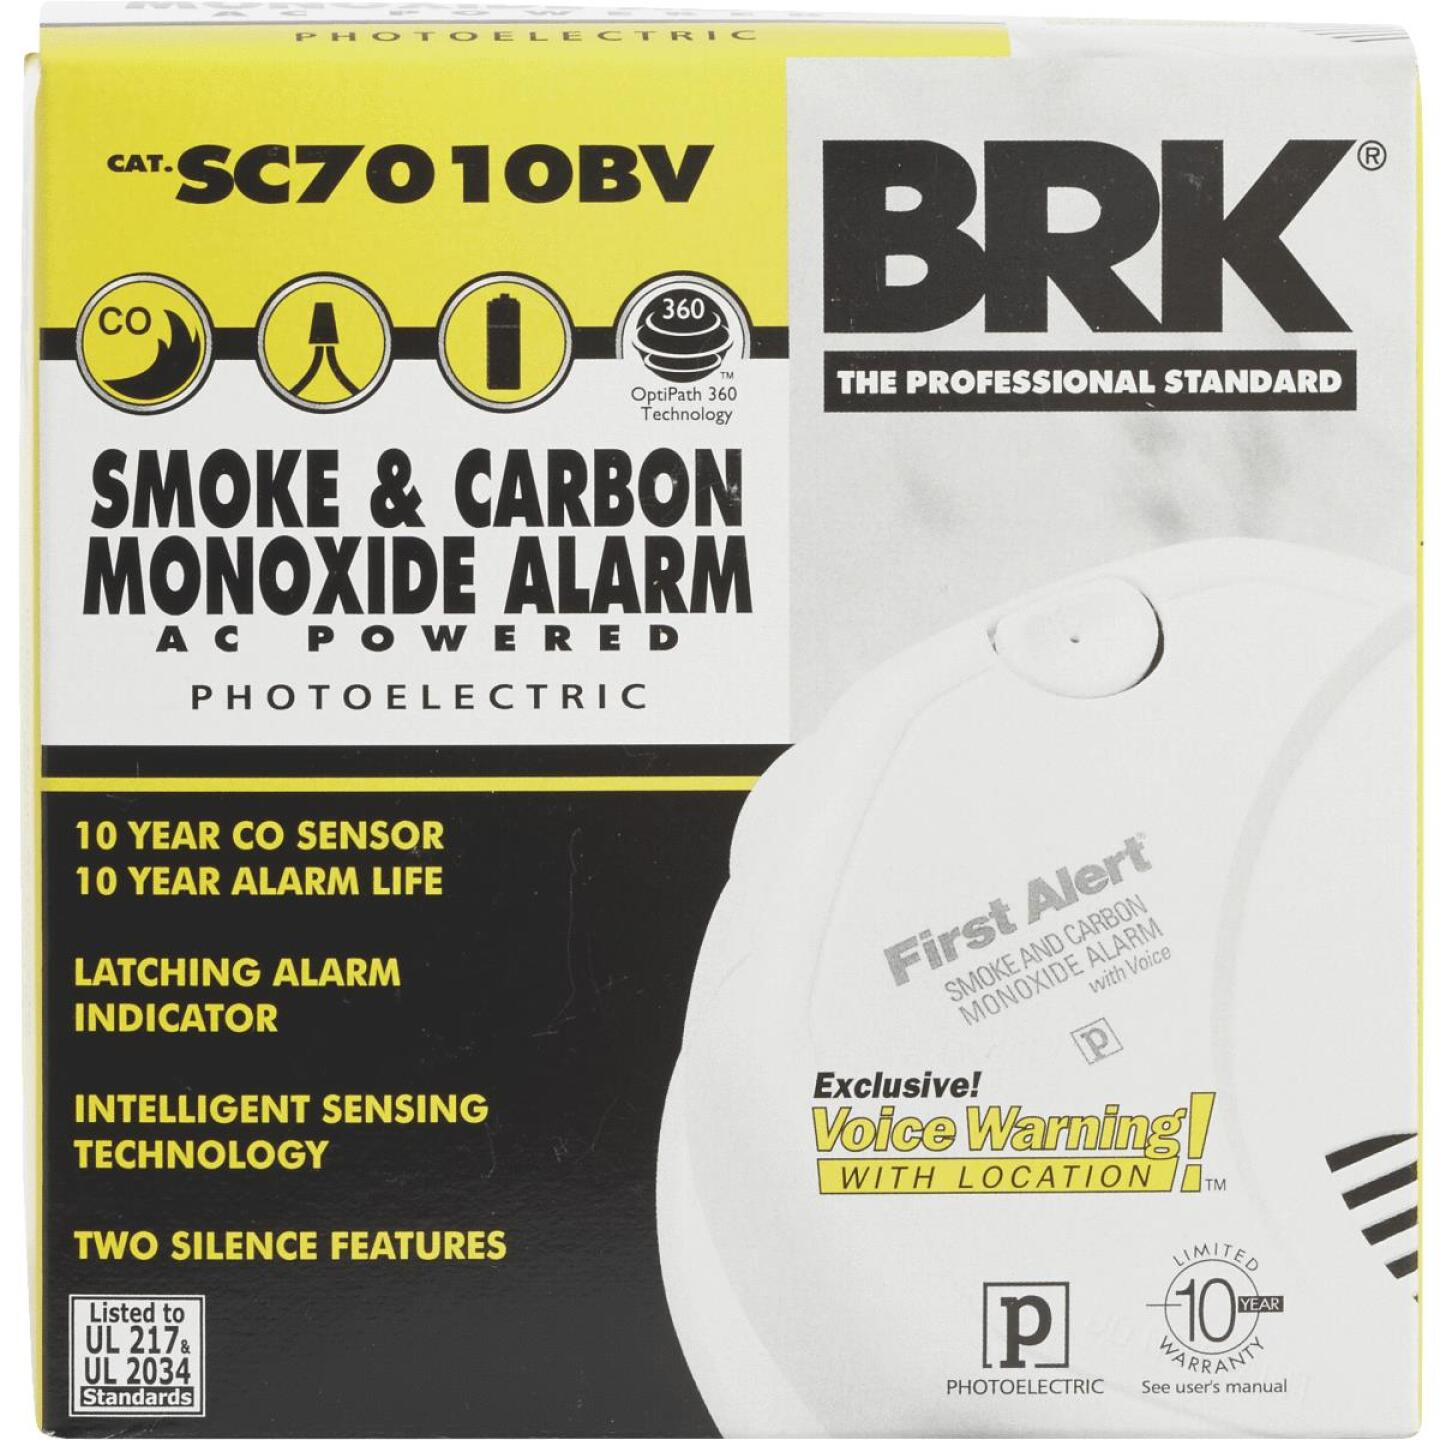 First Alert Hardwired 120V Photoelectric/Electrochemical Carbon Monoxide and Smoke Alarm with Voice Alert Image 2